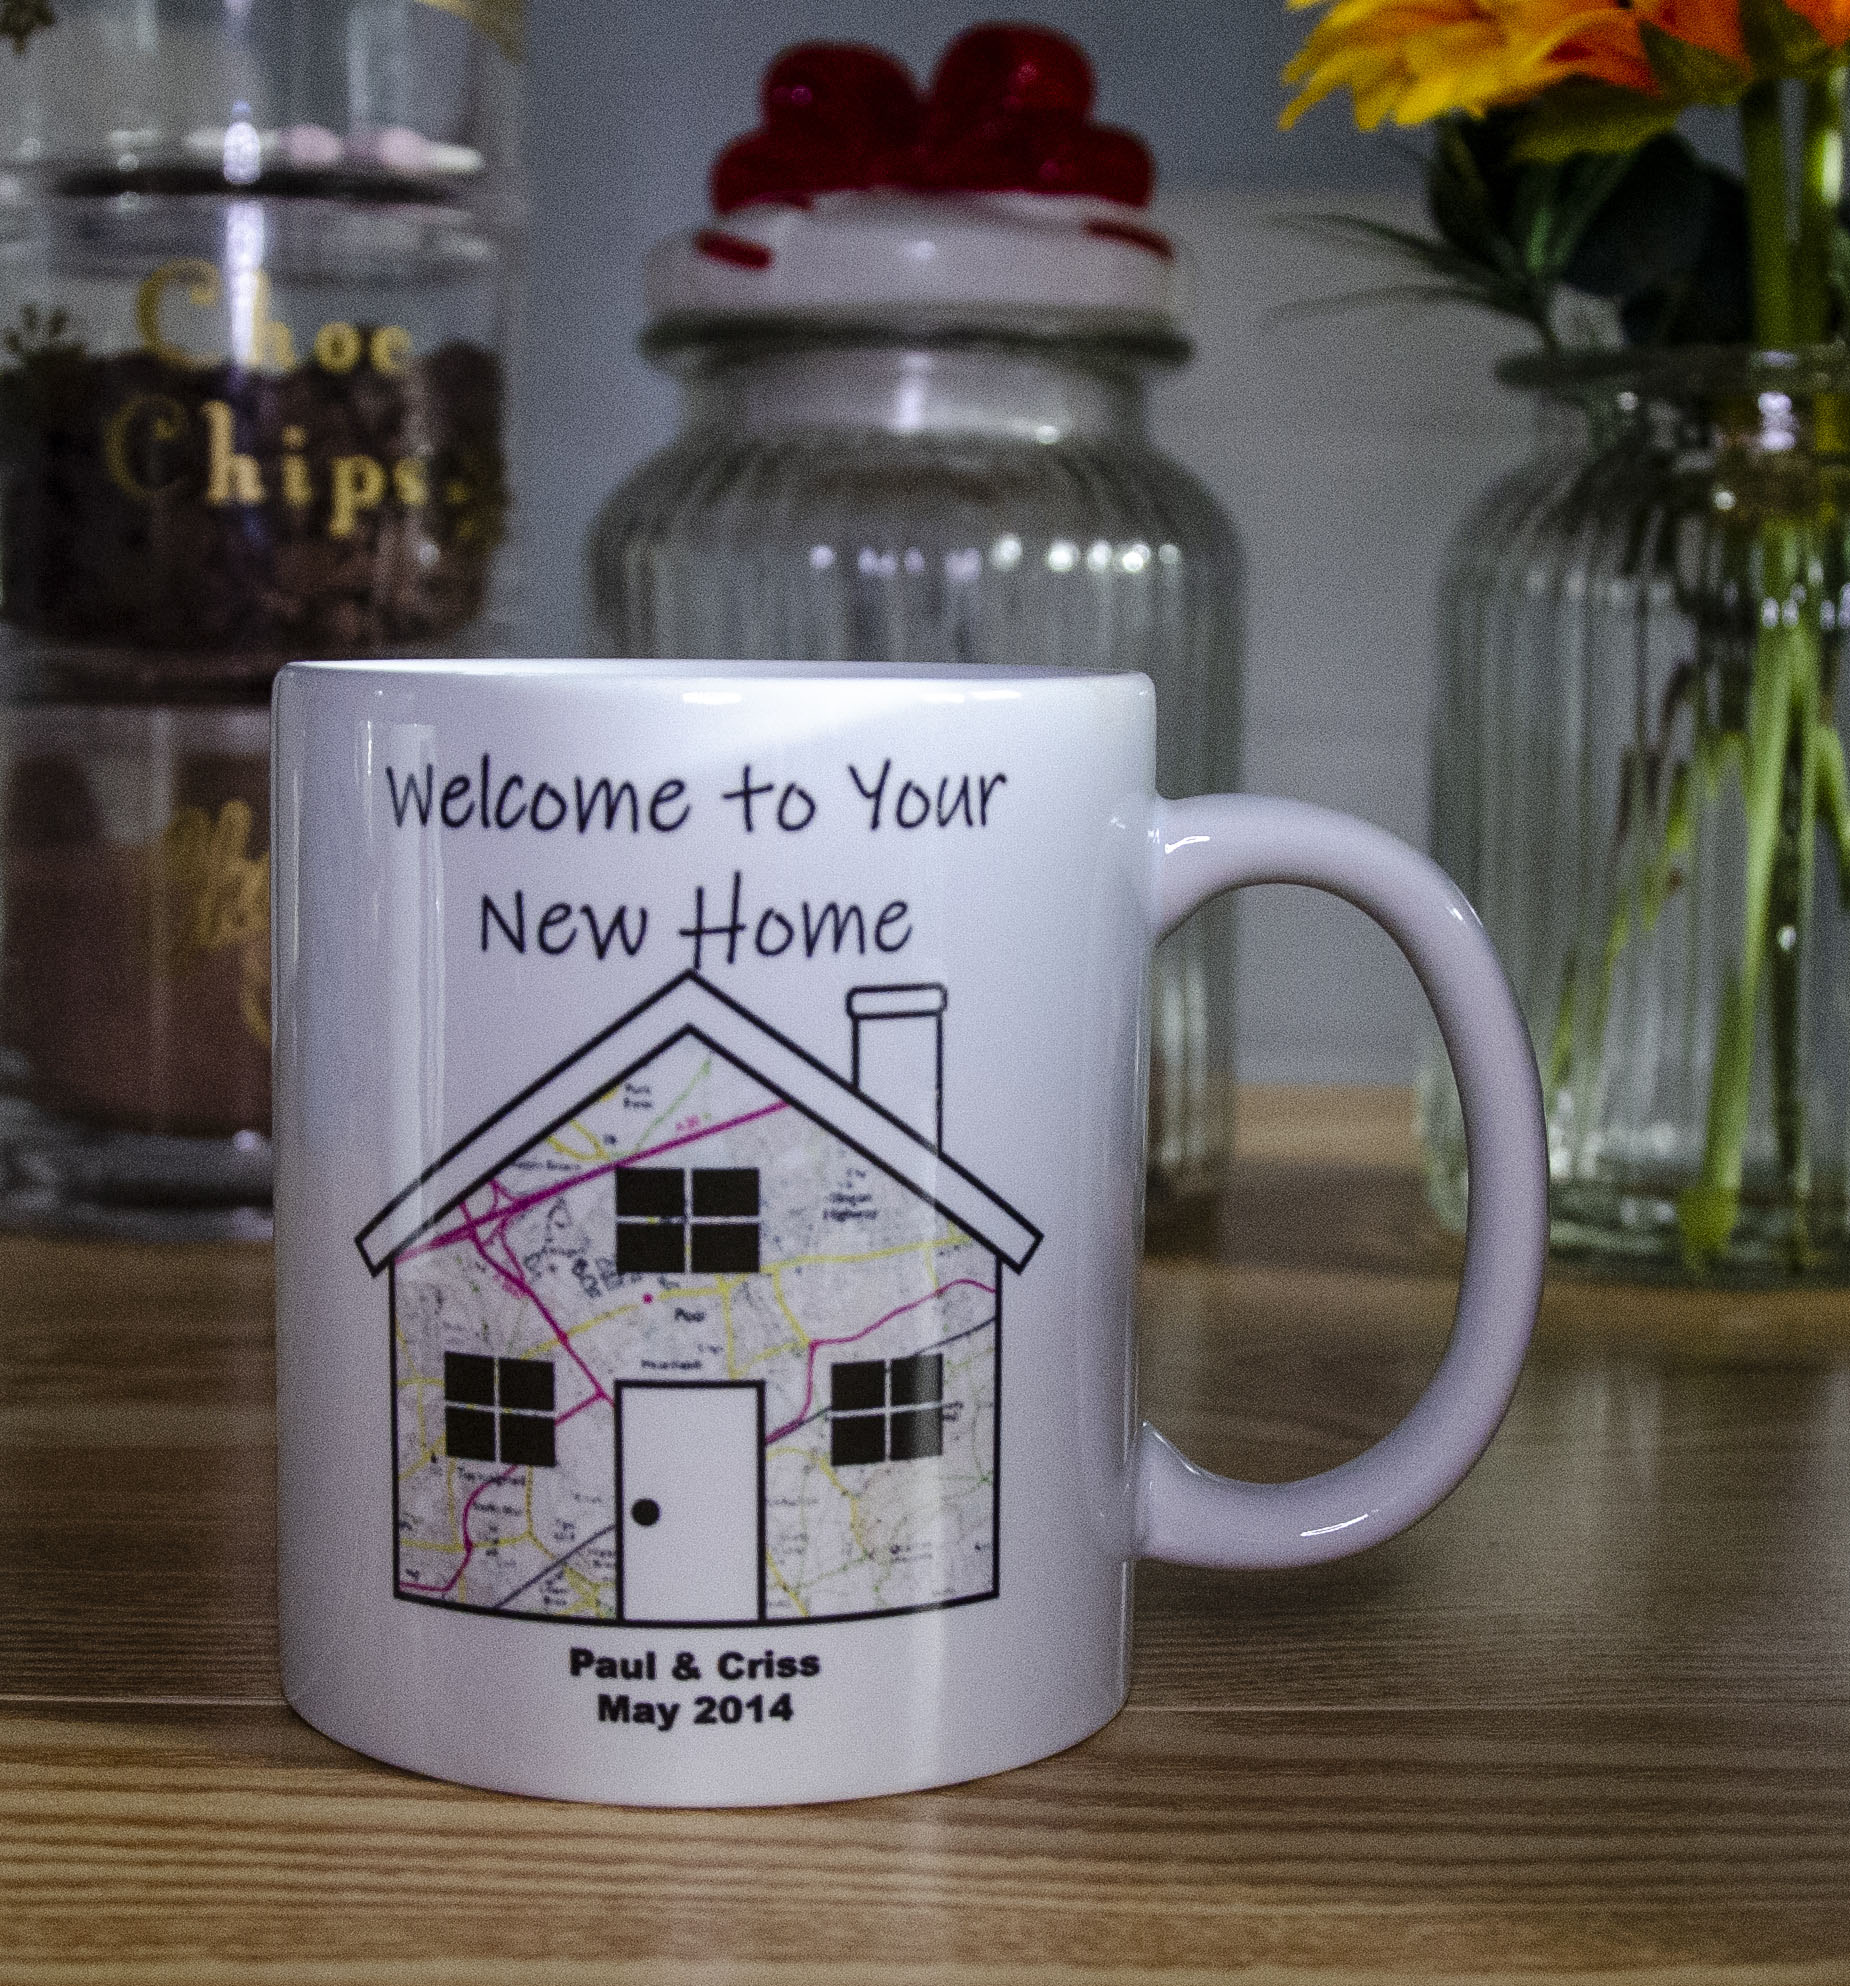 Personalised Housewarming Mug 'Welcome to your new home' Contains Map of the area around the property